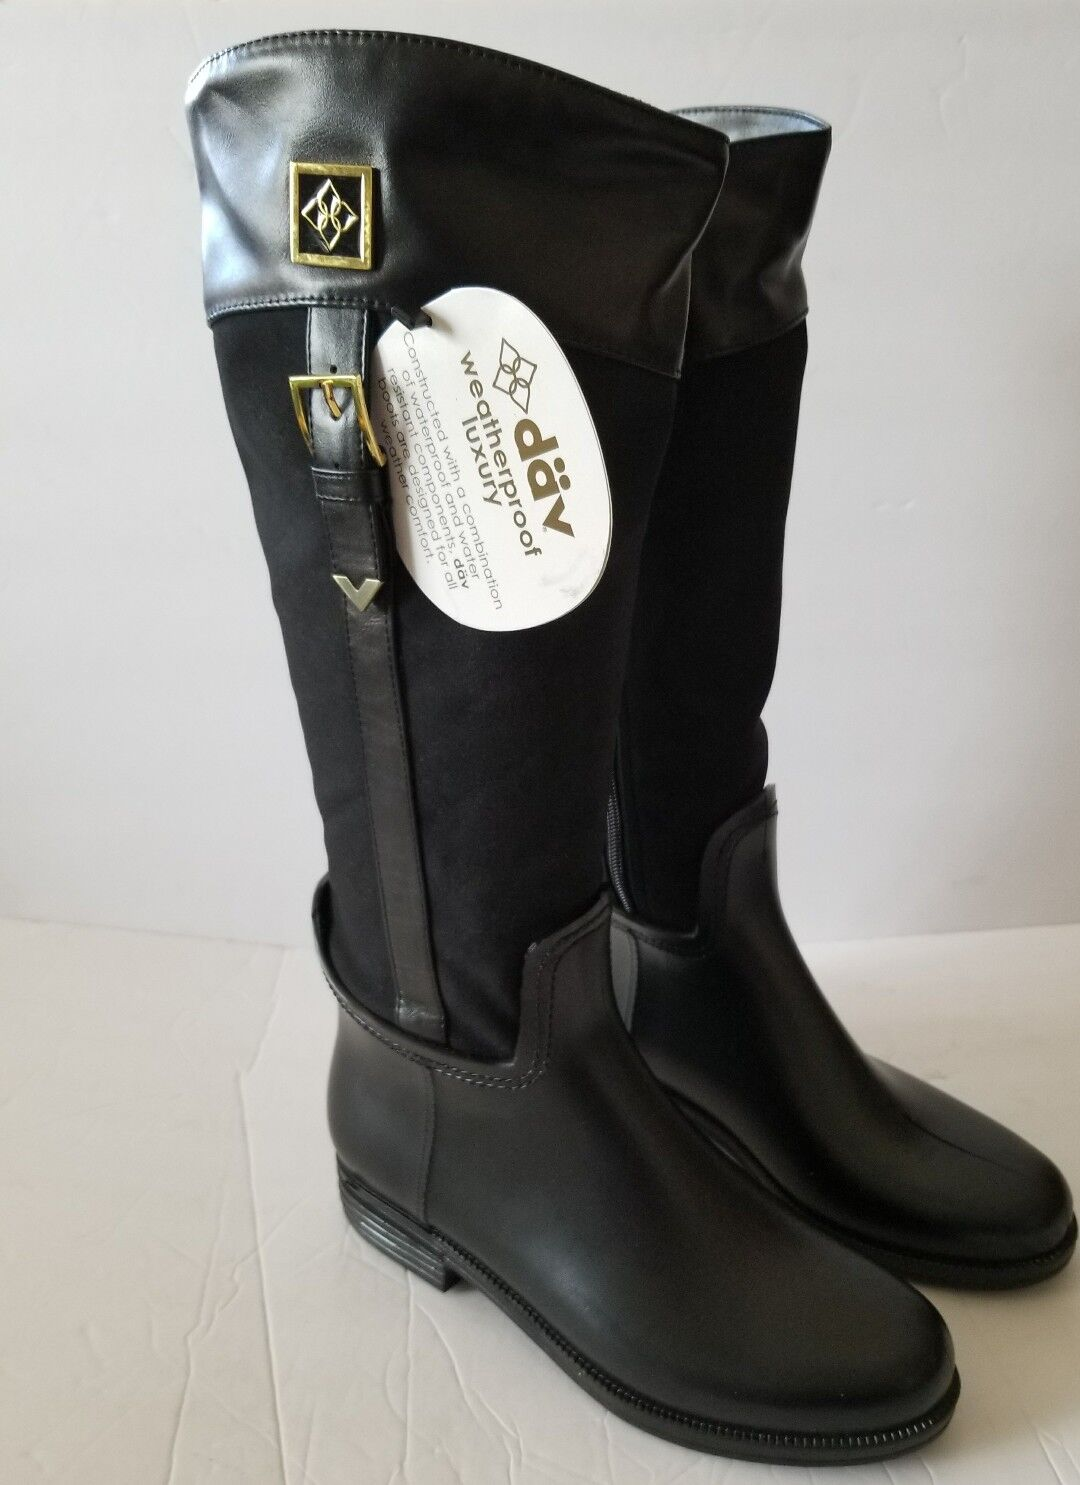 NEW WOMEN'S DAV BLACK BUCKLE COVENTRY SIDE RAINBOOTS SIZE 8 FITS A SIZE 7  120